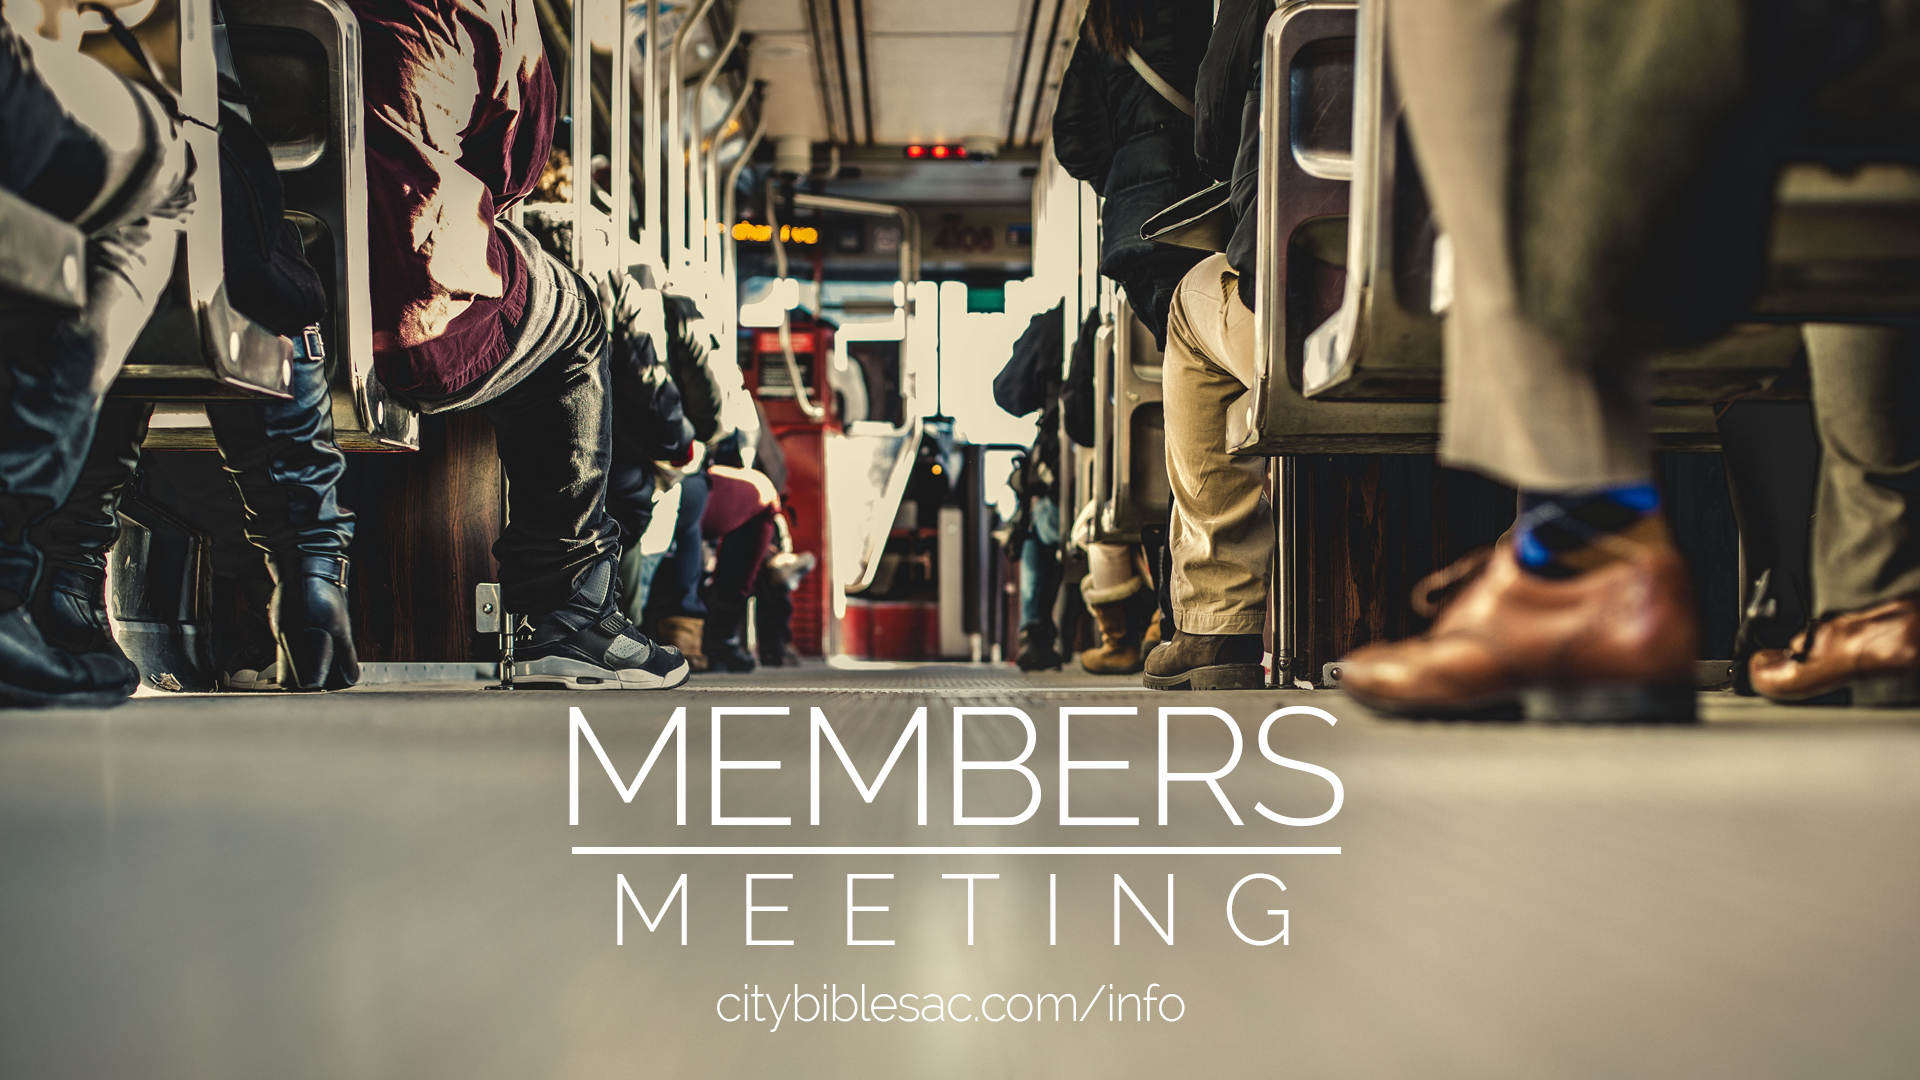 Members Meeting image